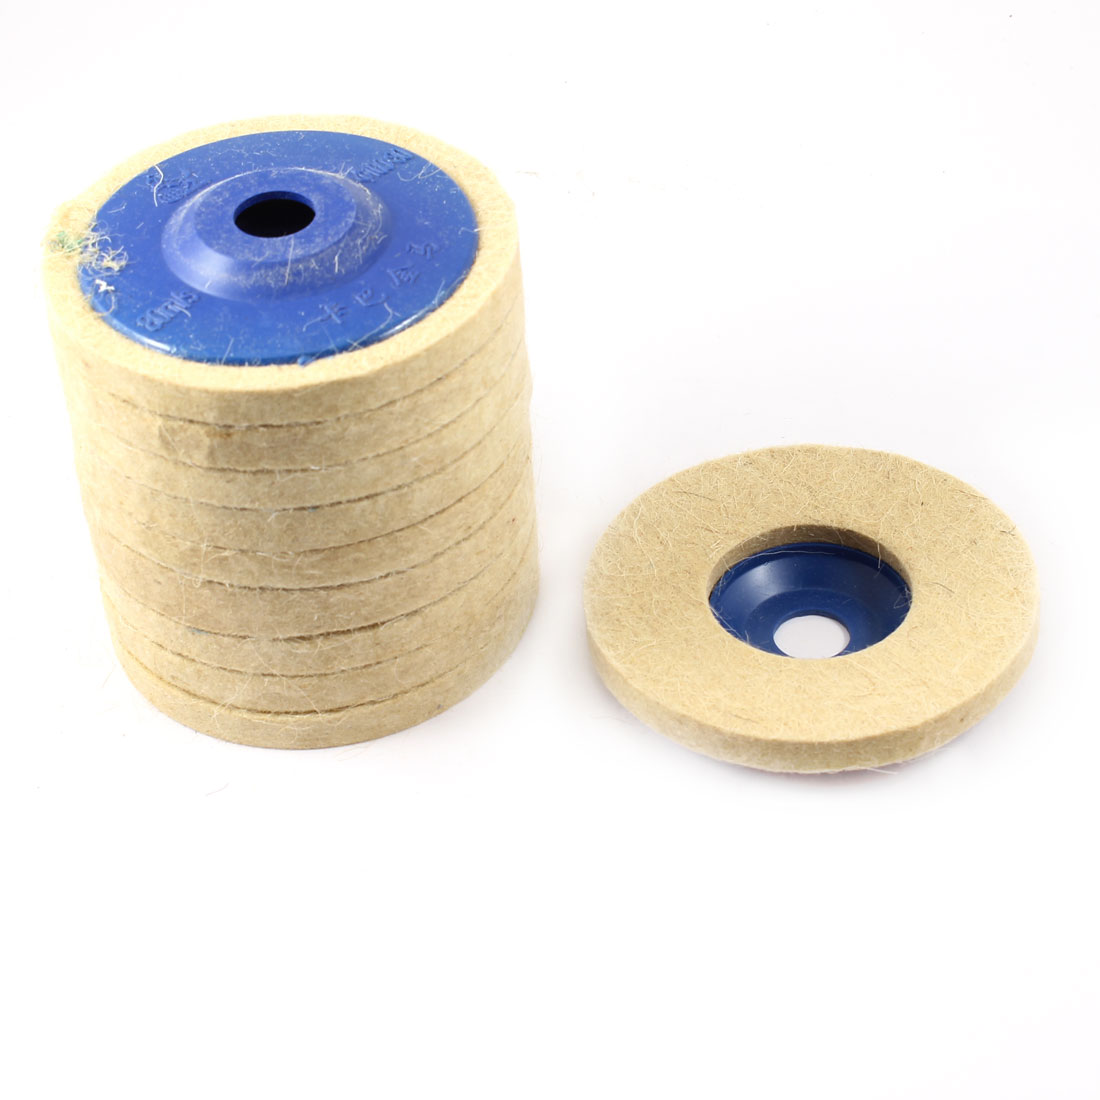 10 Pcs 100mm Outer Dia Wool Felt Polishing Wheel Sanding Disc